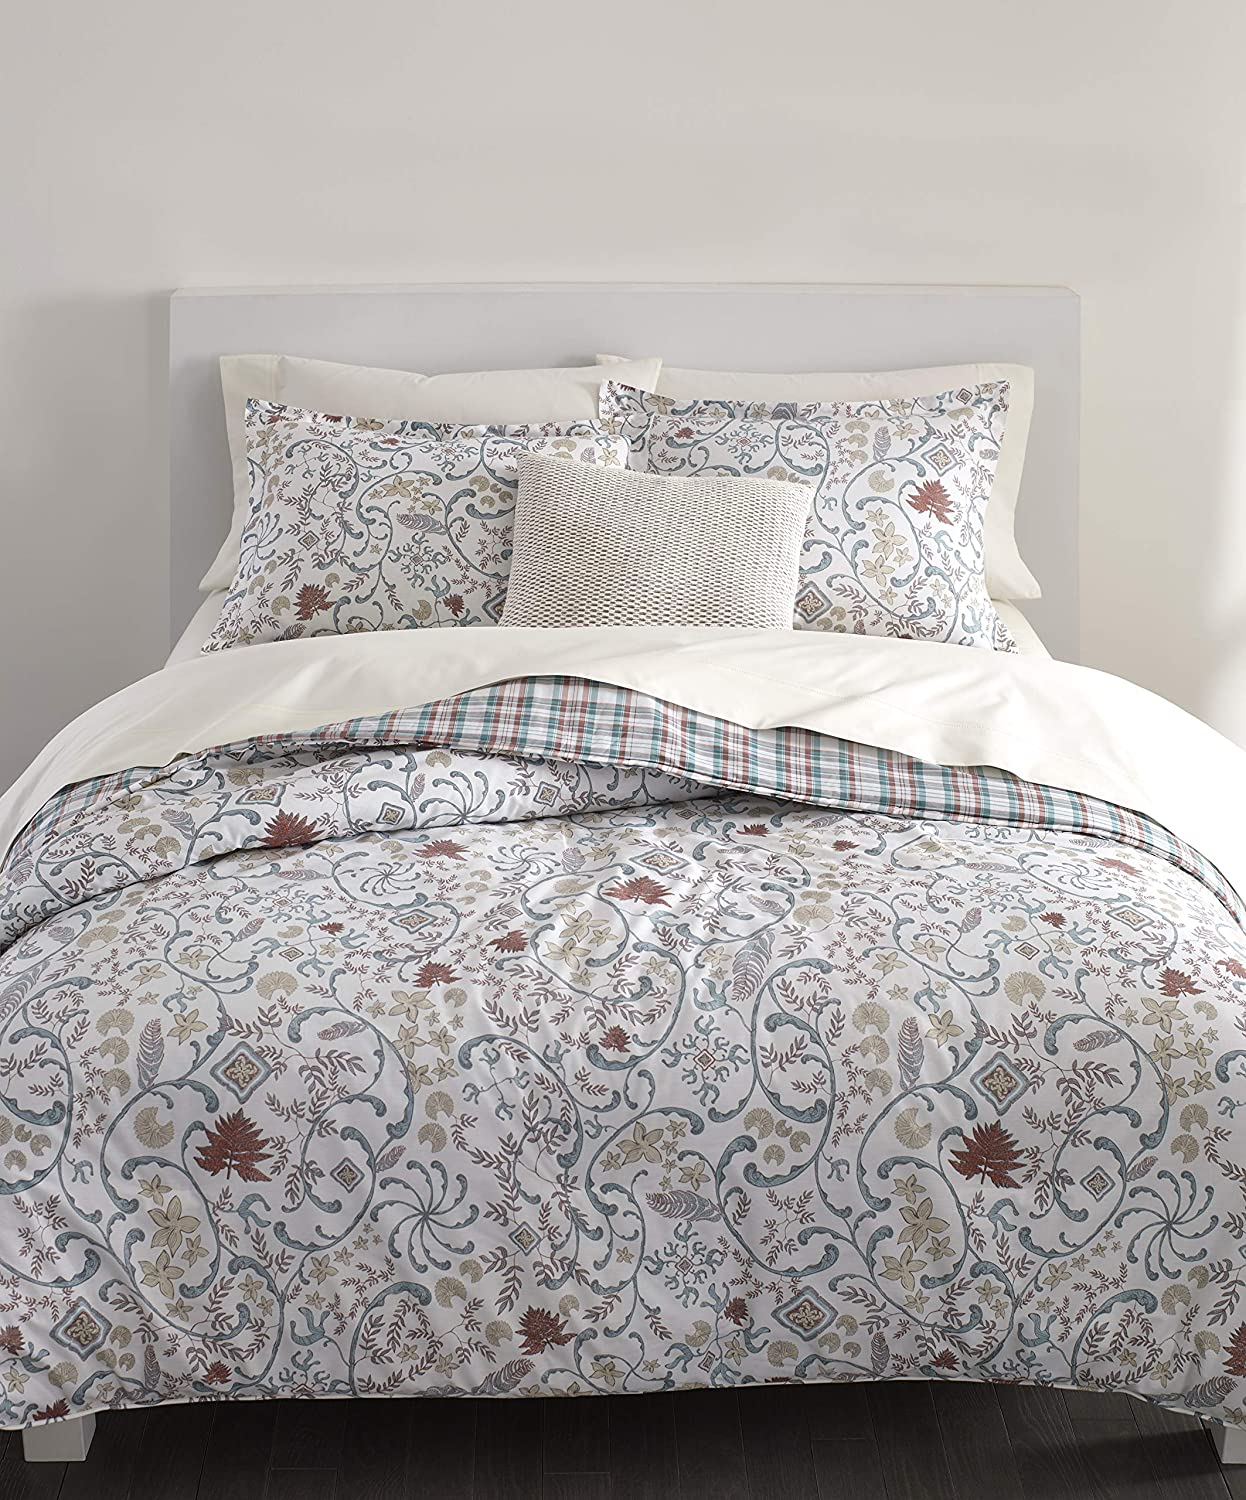 Chaps Home MCKINLEY 100% Cotton Printed 3-Piece Reversible, Highly Breathable Comforter Set, Full/Queen, RED Multi